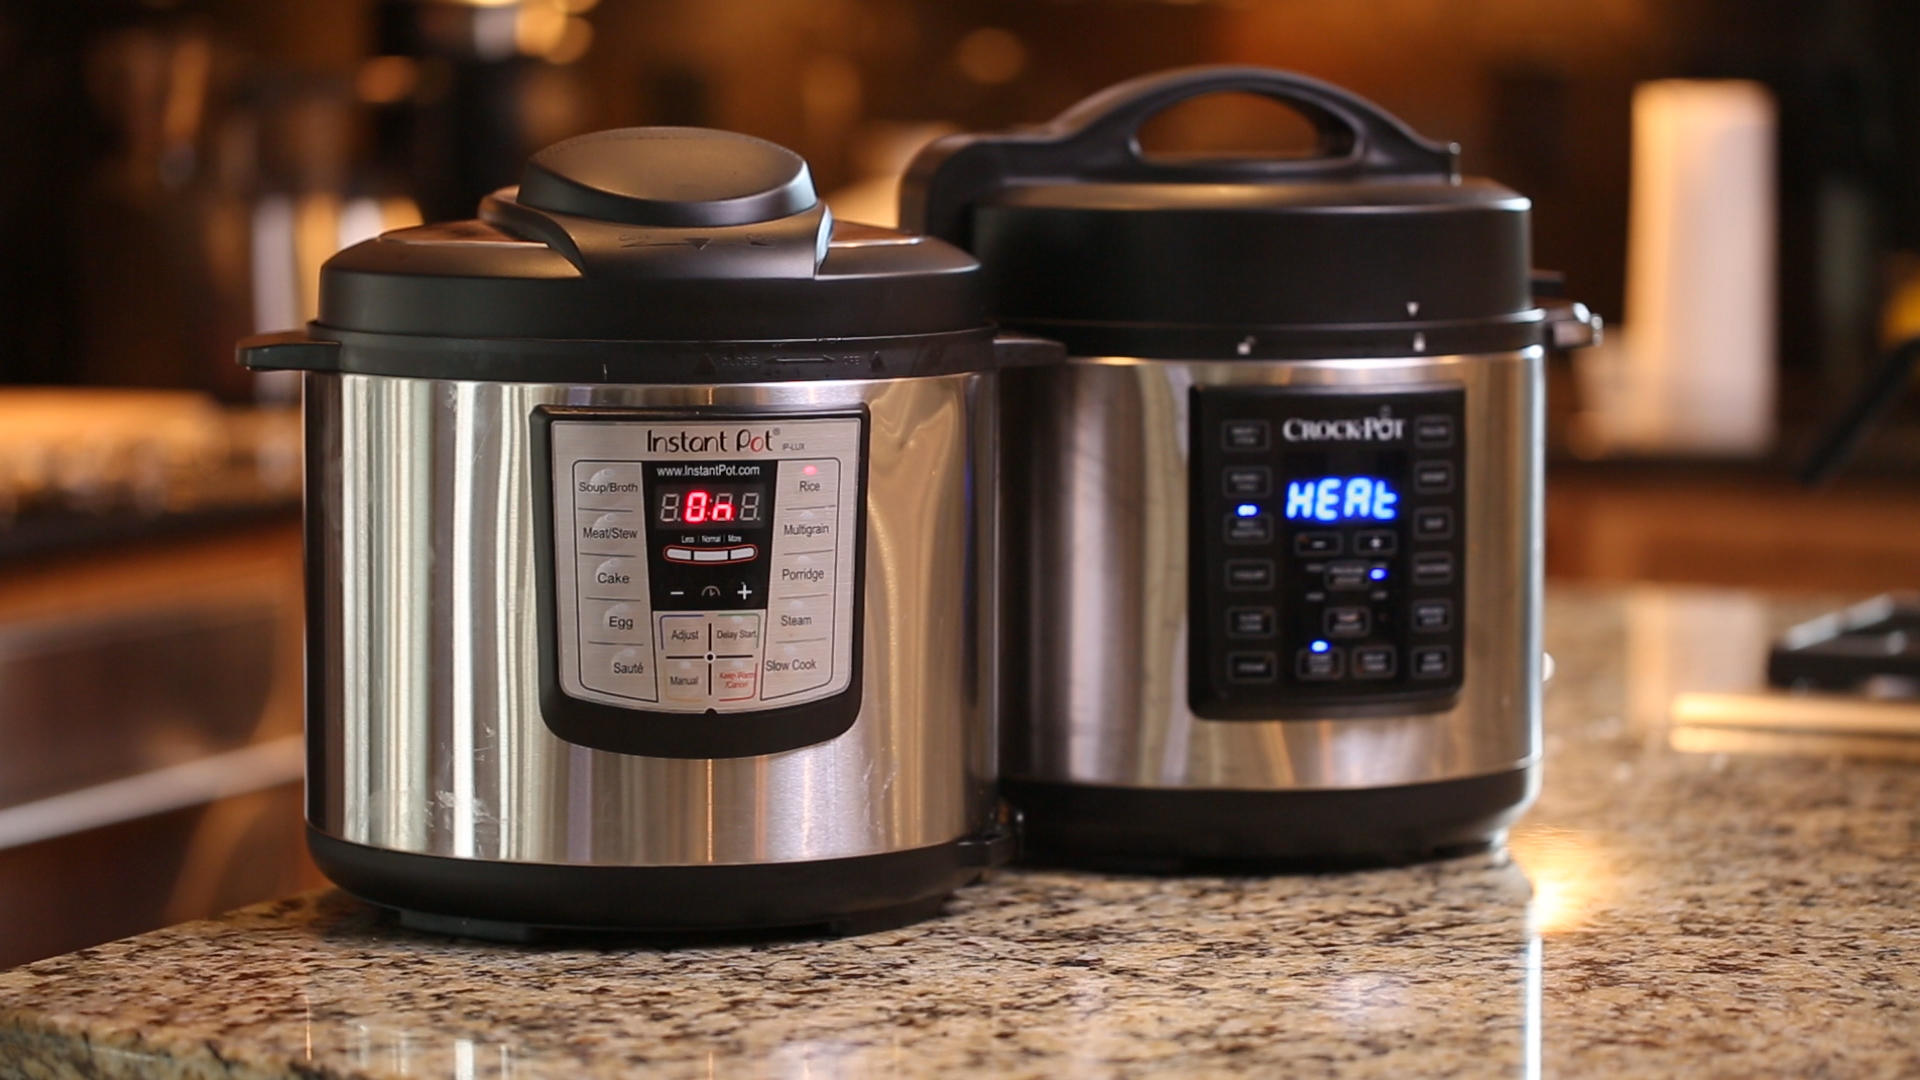 Video: Instant Pot and Crock-Pot multicookers duke it out